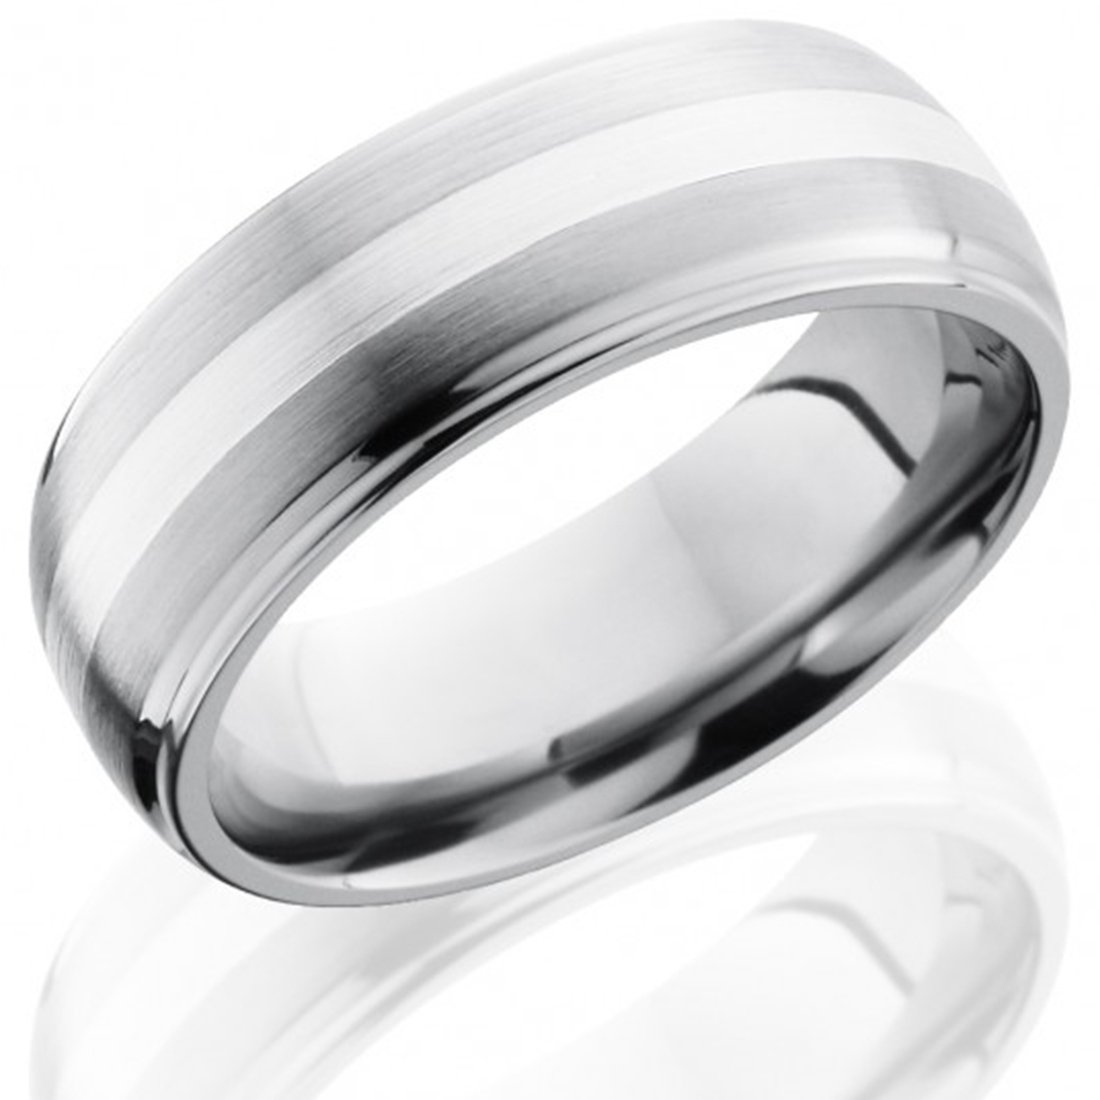 Best Quality Free Gift Box Titanium Grooved Sterling Silver Inlay 8mm Brushed Band